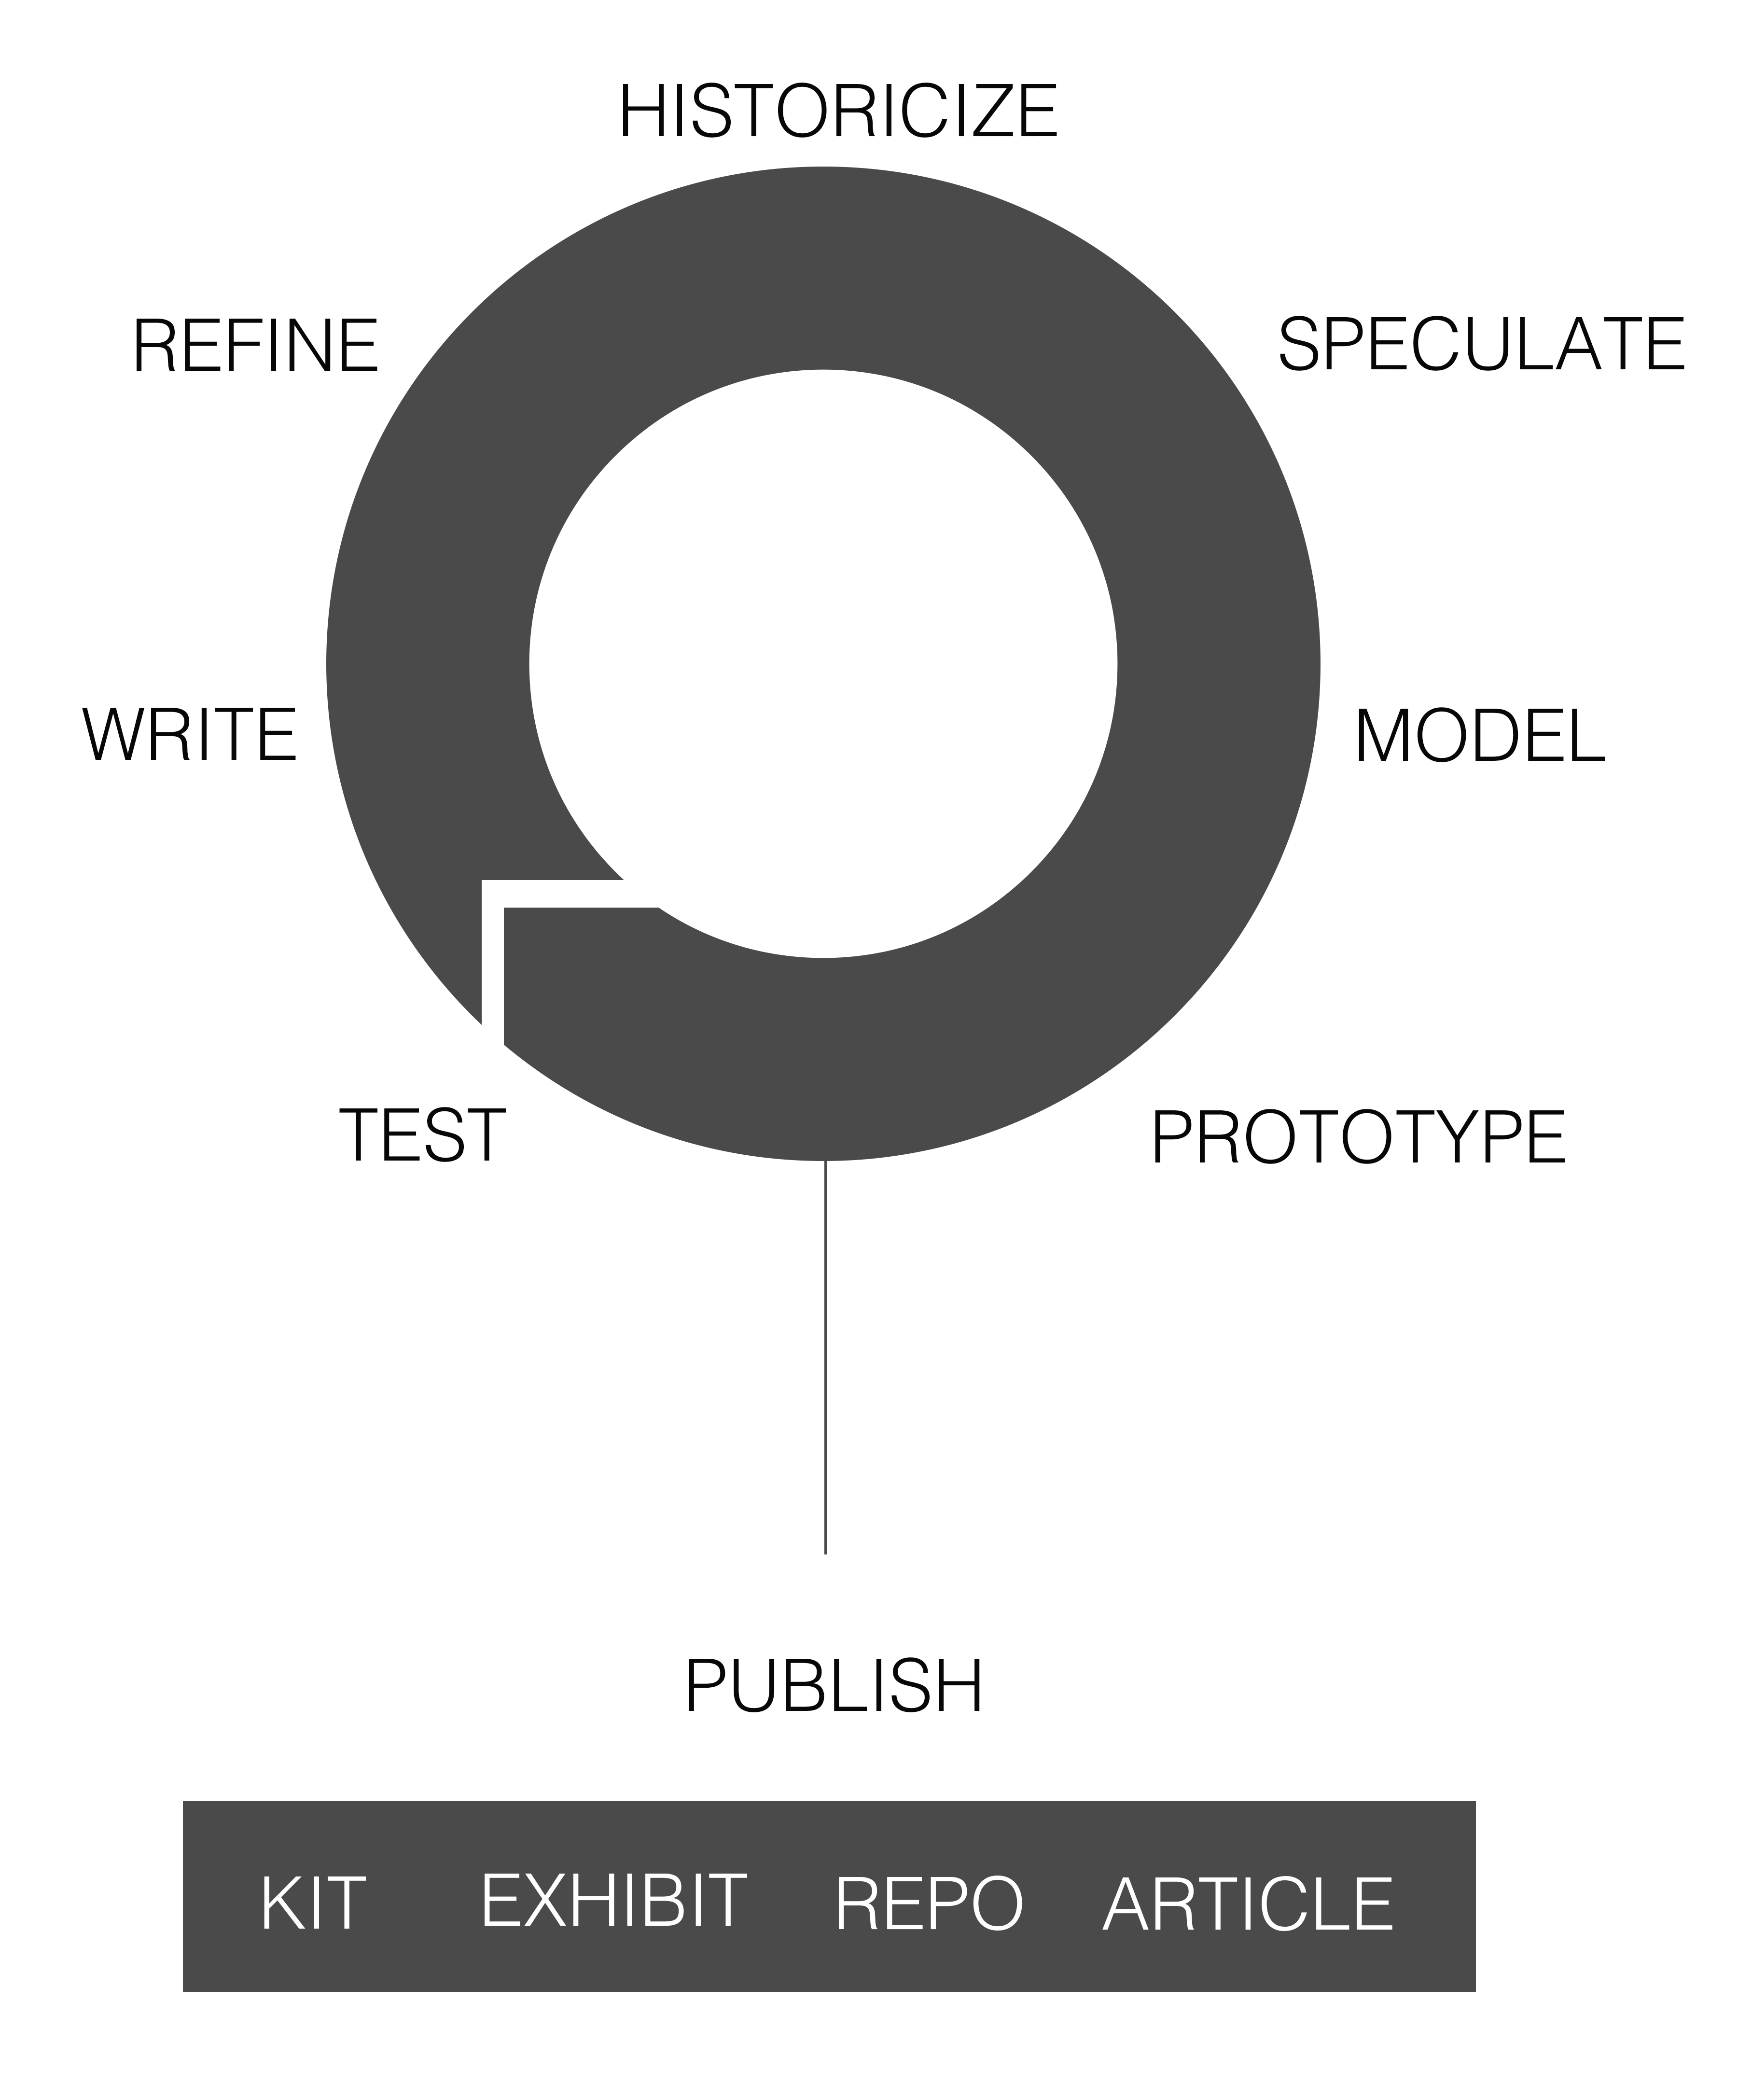 Figure 1: Design Cycle for the Kits